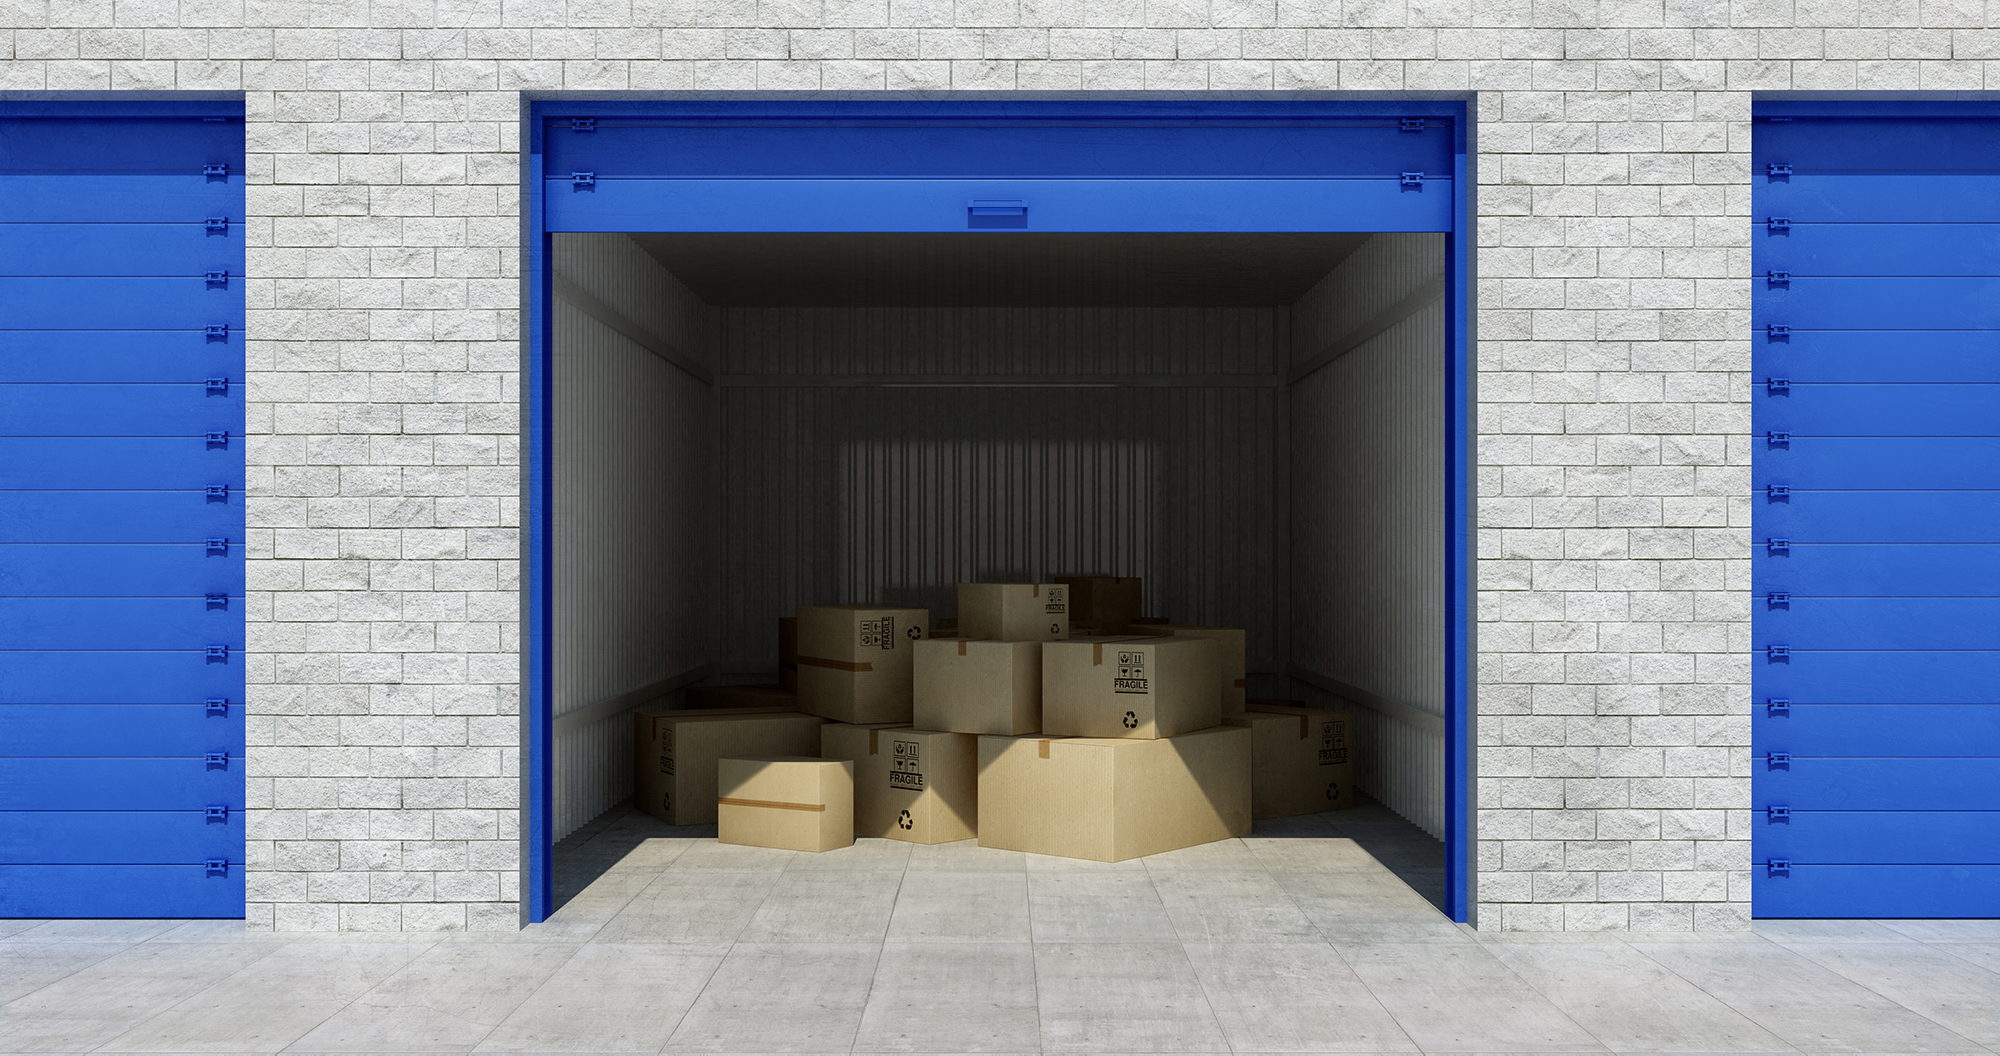 Illustration of an open storage unit partially filled with cardboard boxes